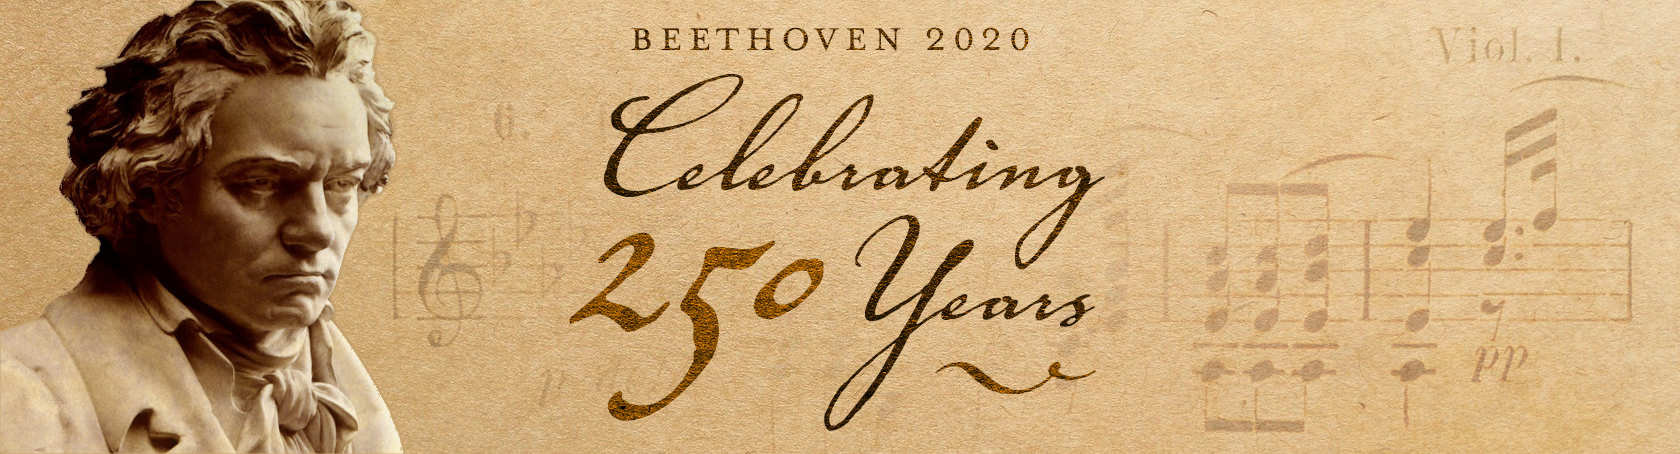 Banner for Beethoven 2020